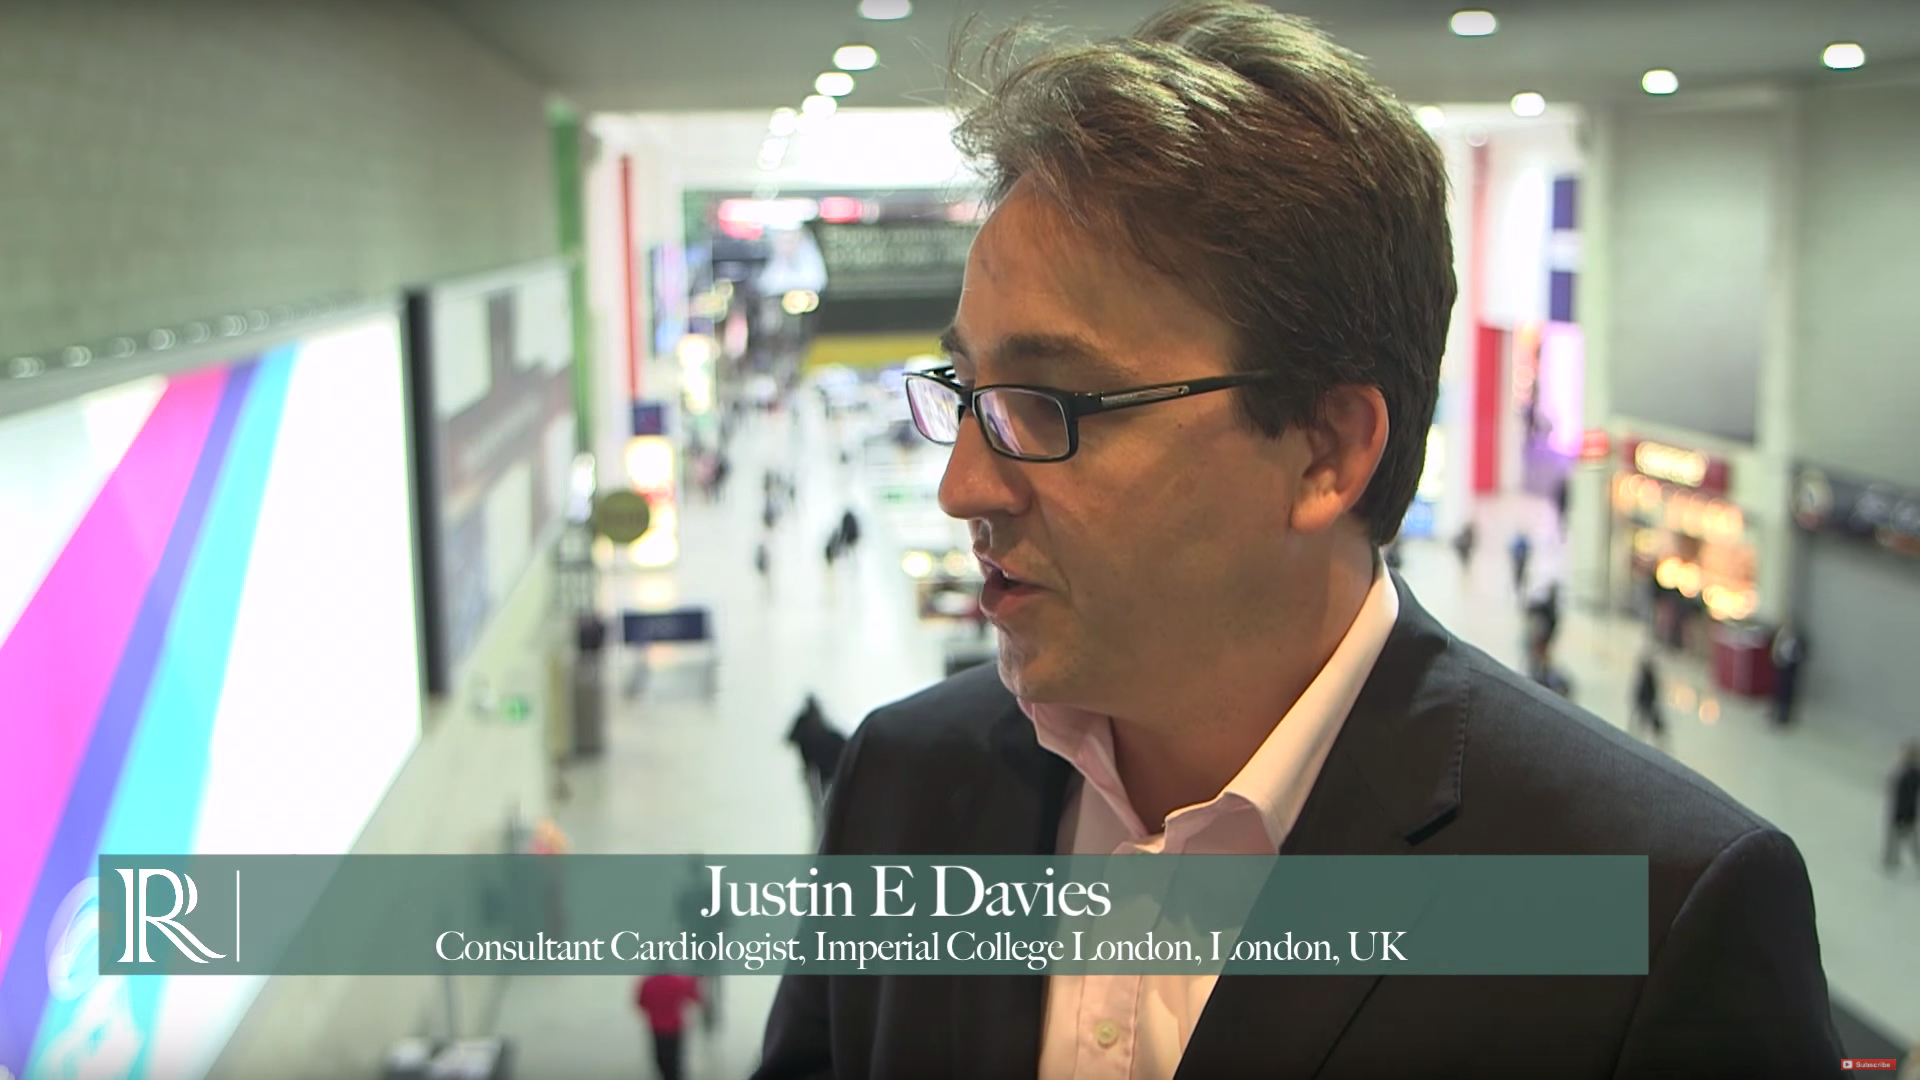 ESC 2015: Renal Denervation In 2015 discusses with Justin E. Davies